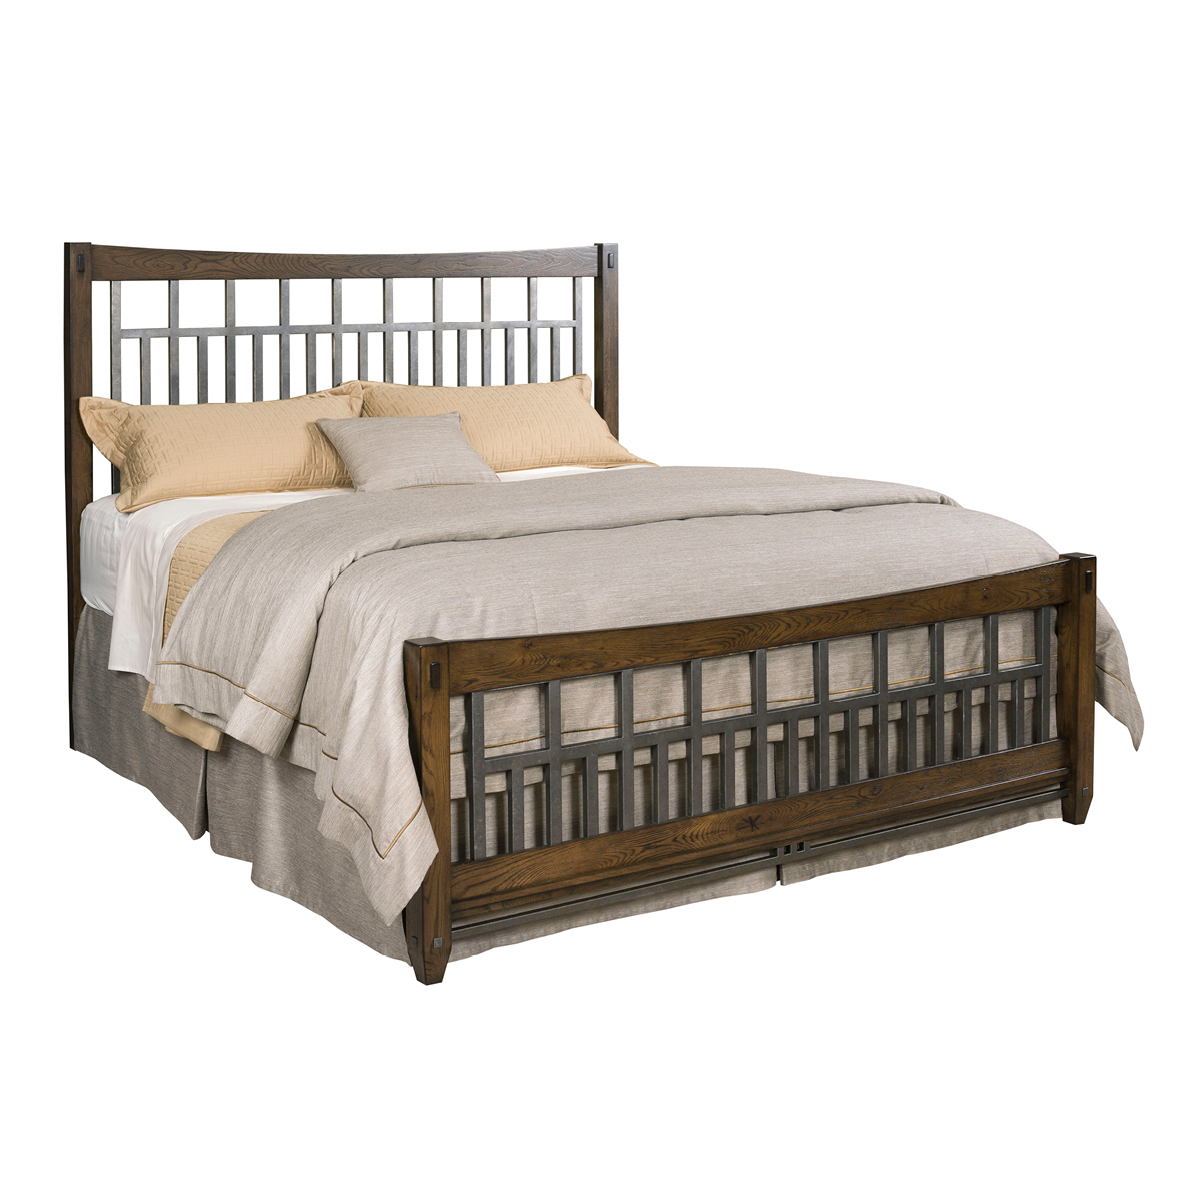 Jonathan Louis Furniture Quality Kincaid Bedford Park Elements Bed | Broadway Furniture